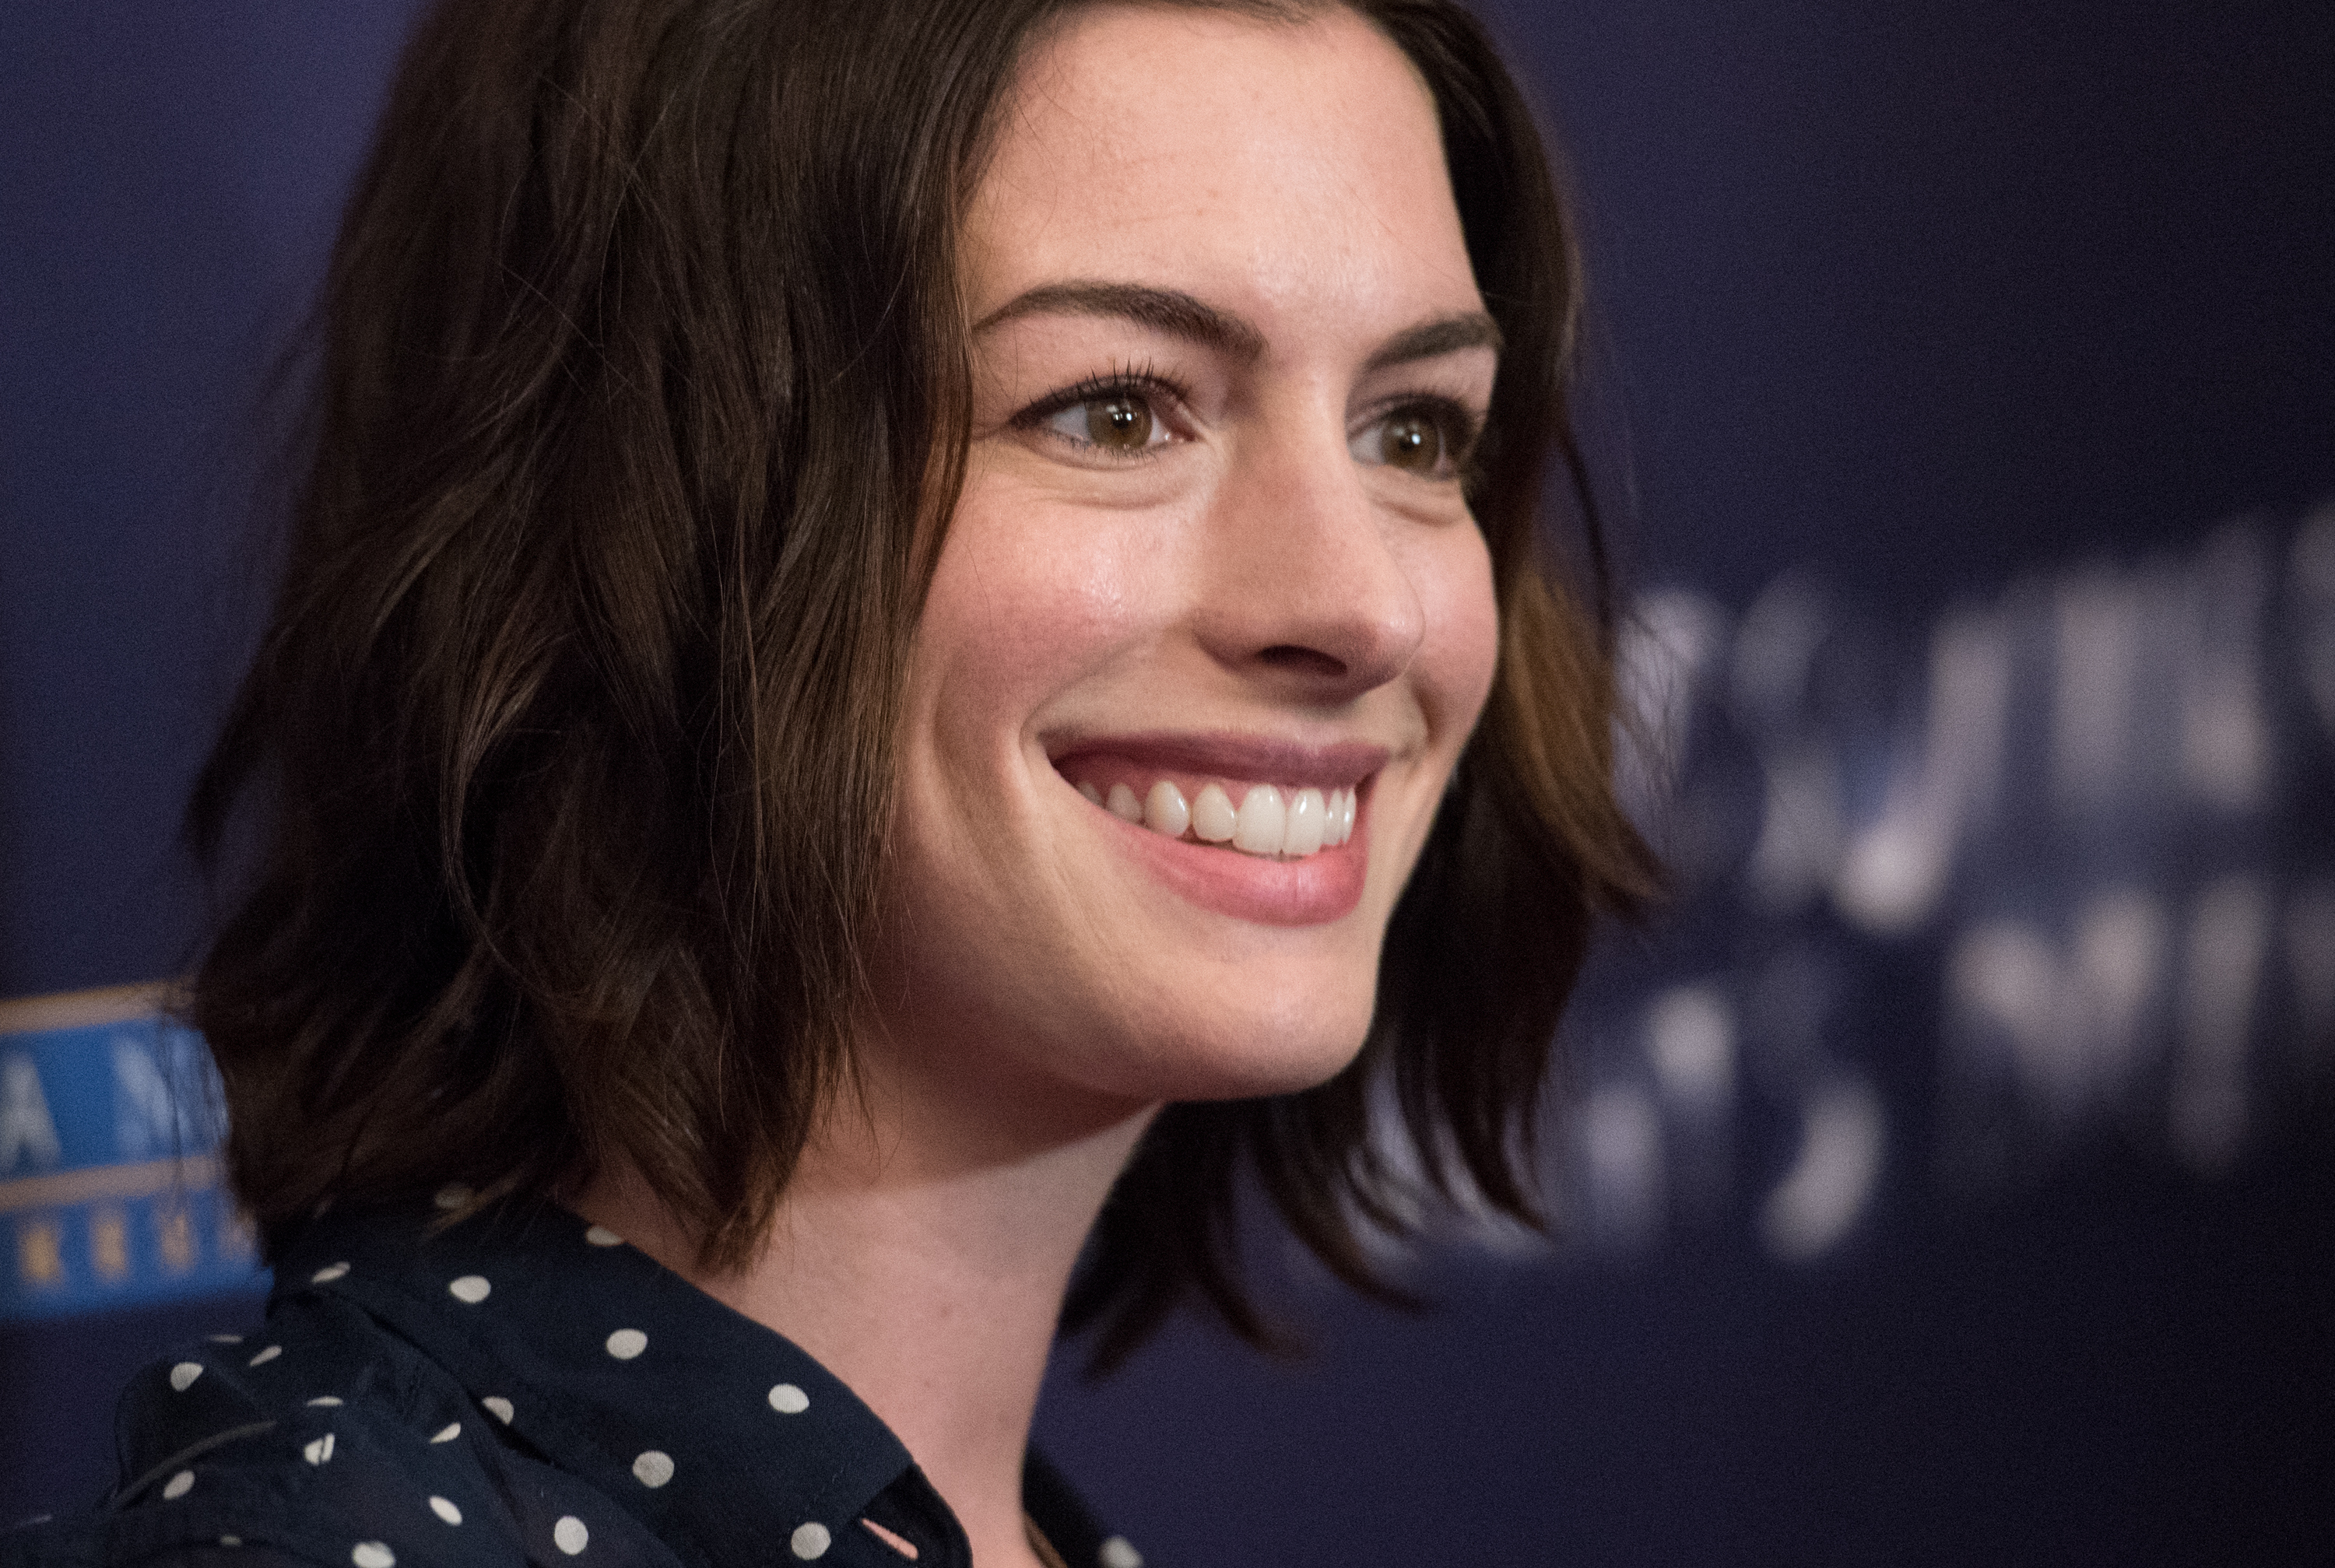 Actress Anne Hathaway attends 'A Midsummer Night's Dream  New York premiere at DGA Theater on June 15, 2015 in New York City.